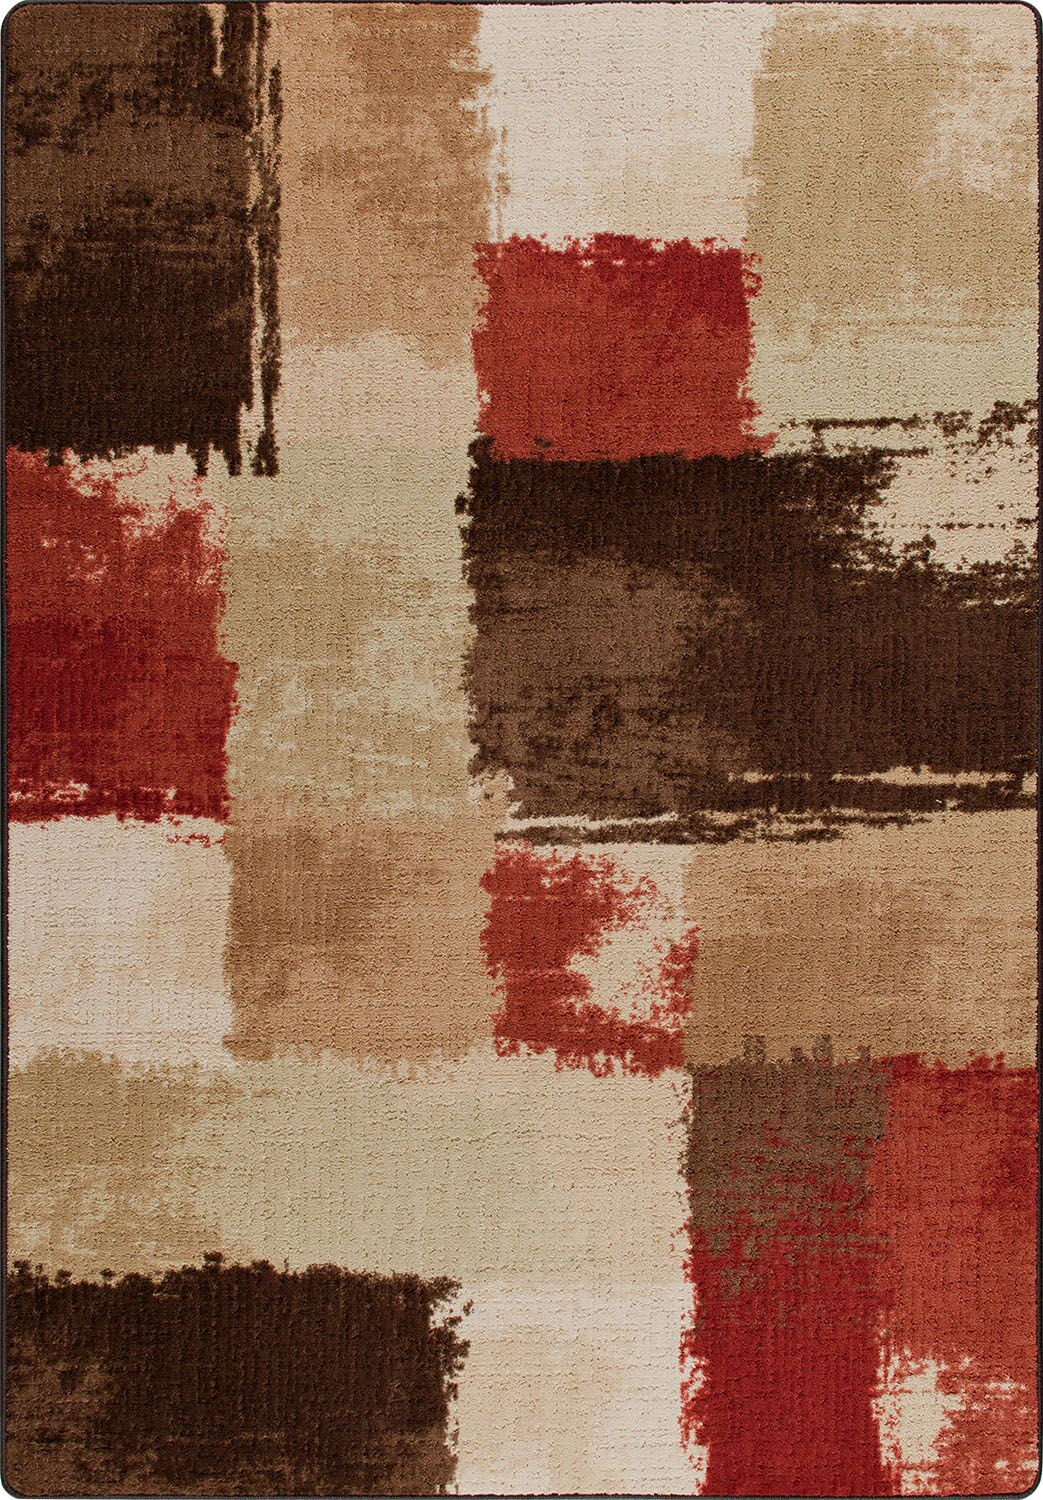 Mix and Mingle Spice Fair And Square Rug Rug Size: Runner 2'1